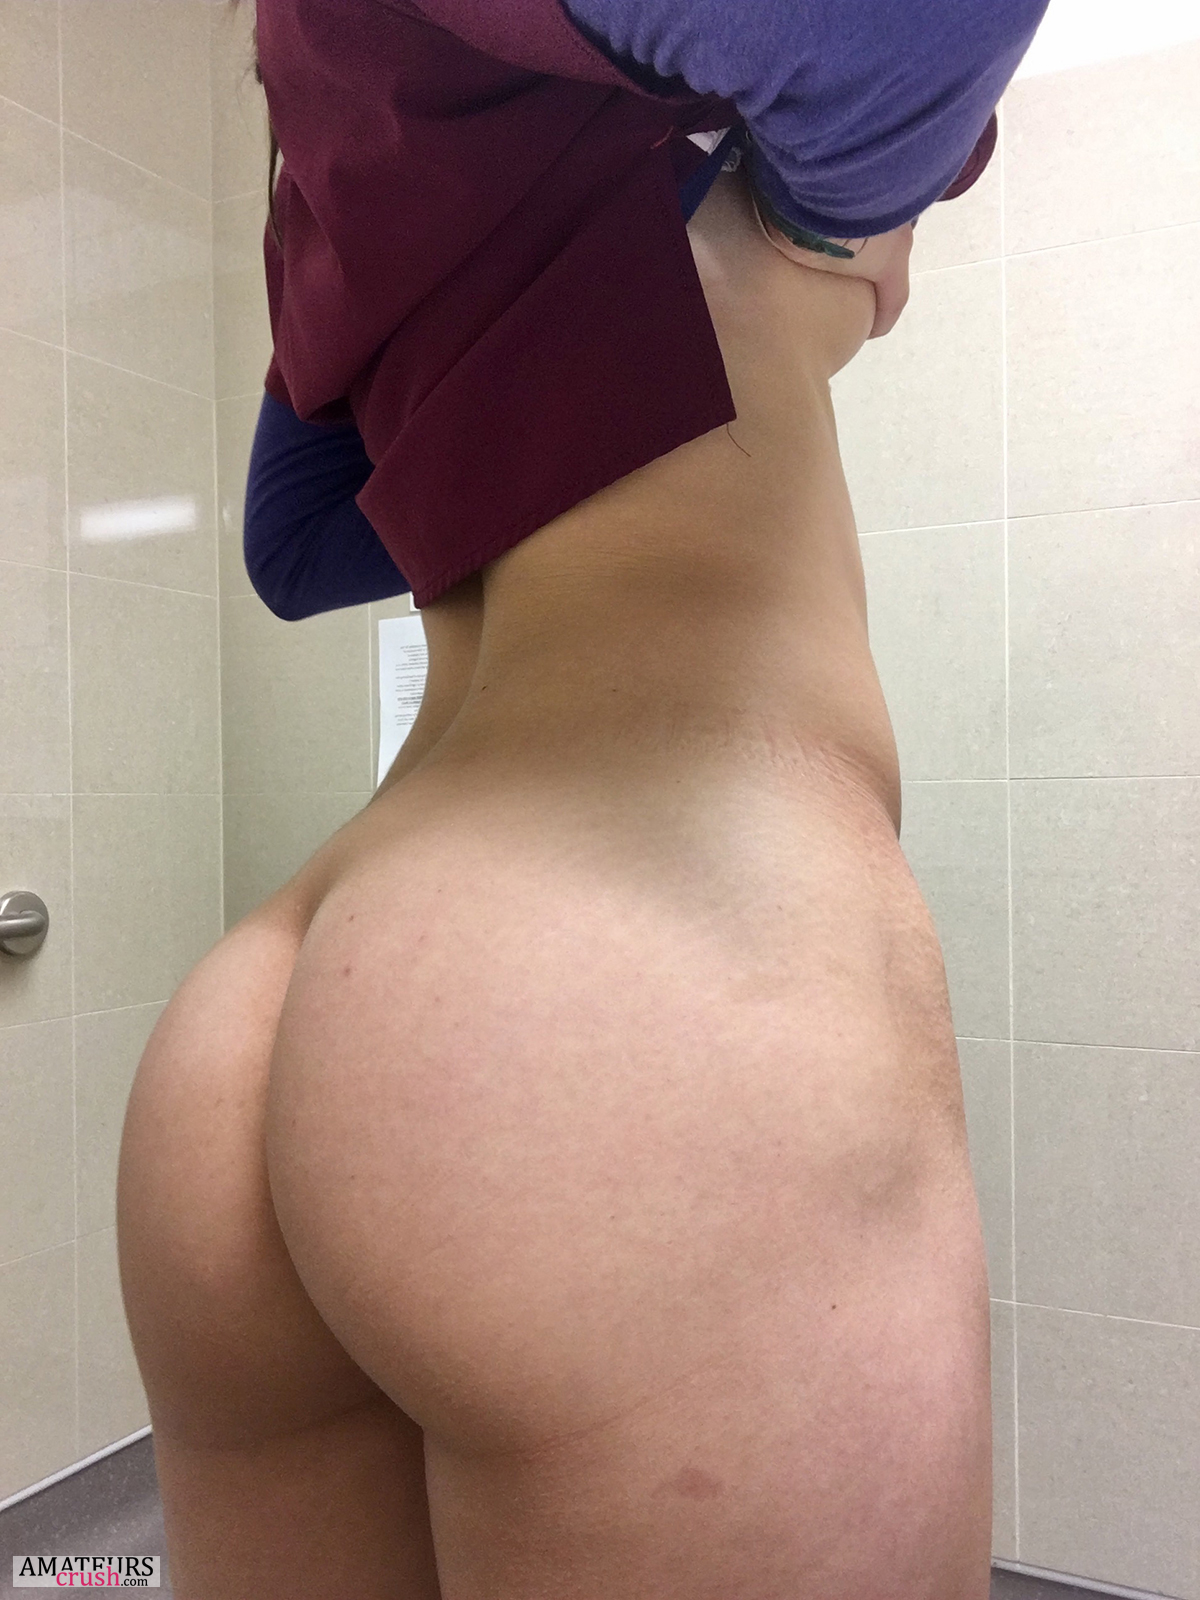 amateur pussy shots at work